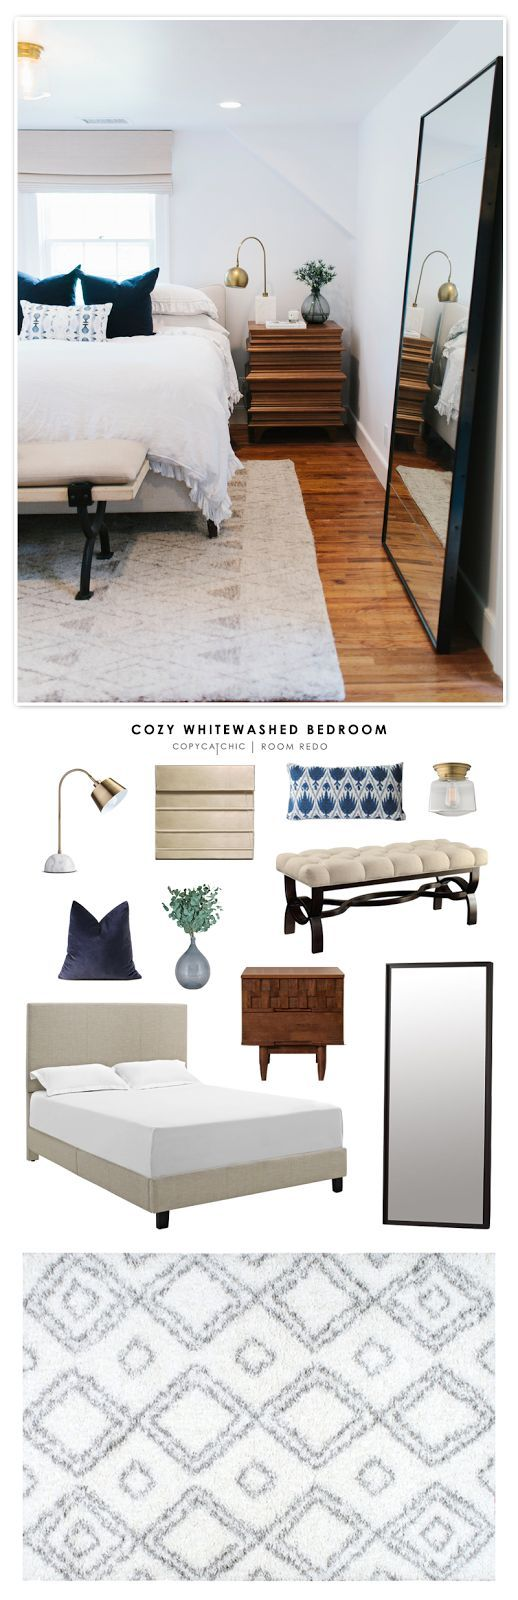 Copy Cat Chic Room Redo | Cozy Whitewashed Bedroom